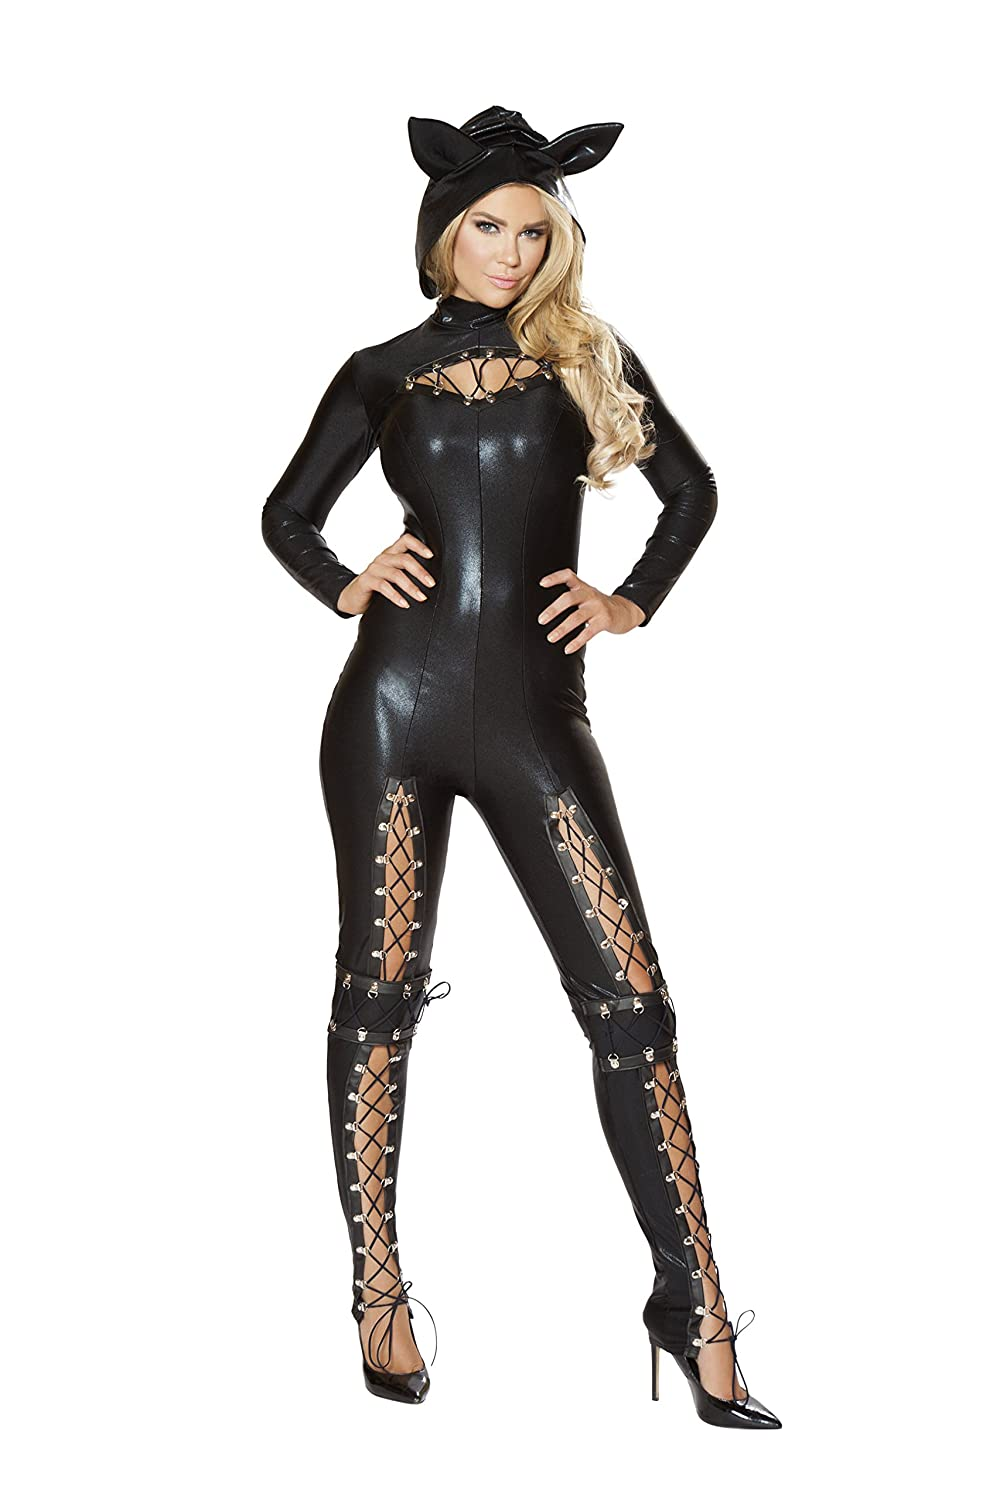 Forplay Costumes Fierce Feline Ears Mas Jumpsuit Belt Gloves